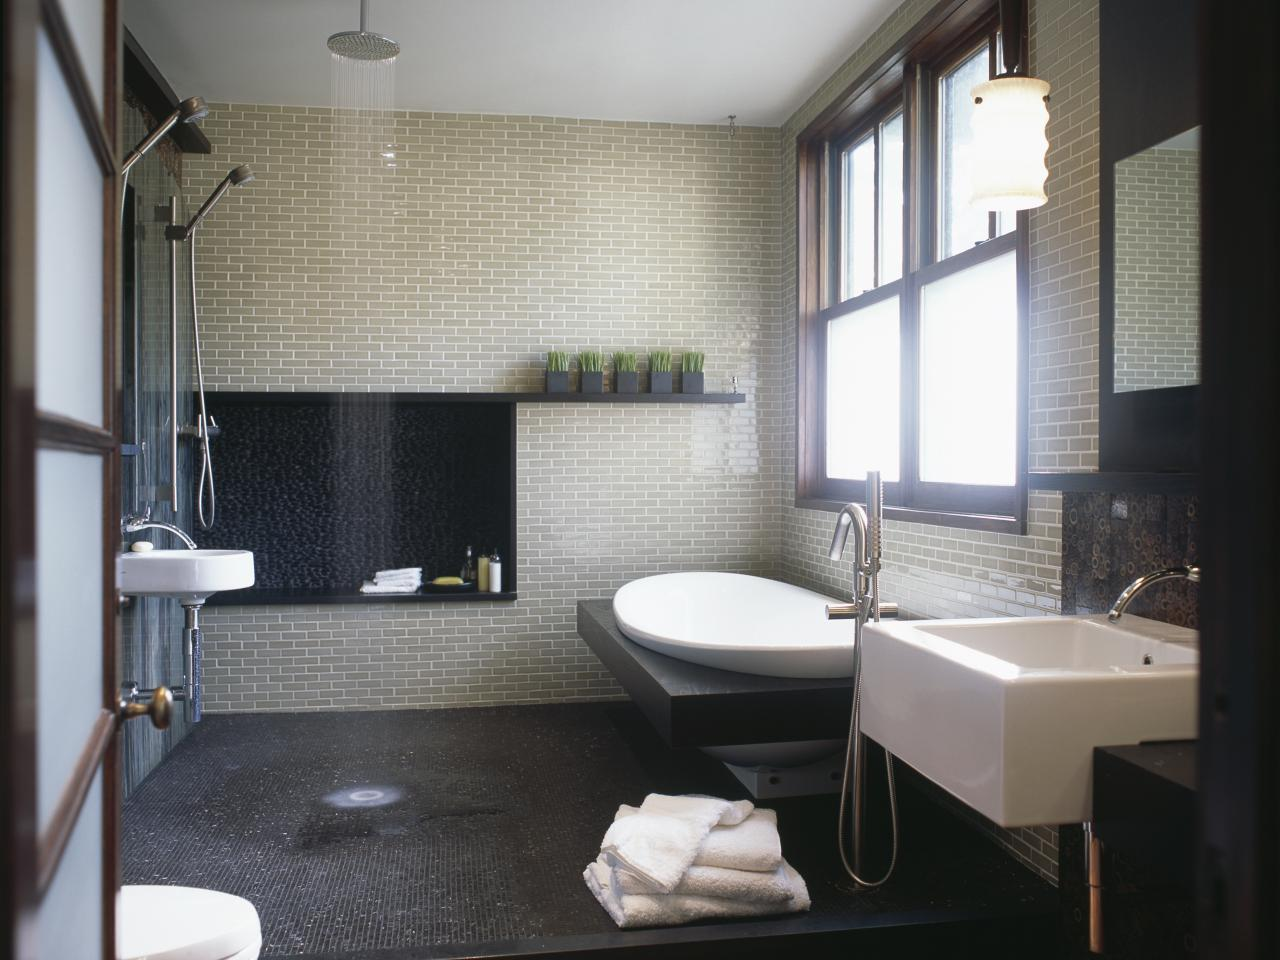 Bathroom Accessories That Every Bathroom Must Have